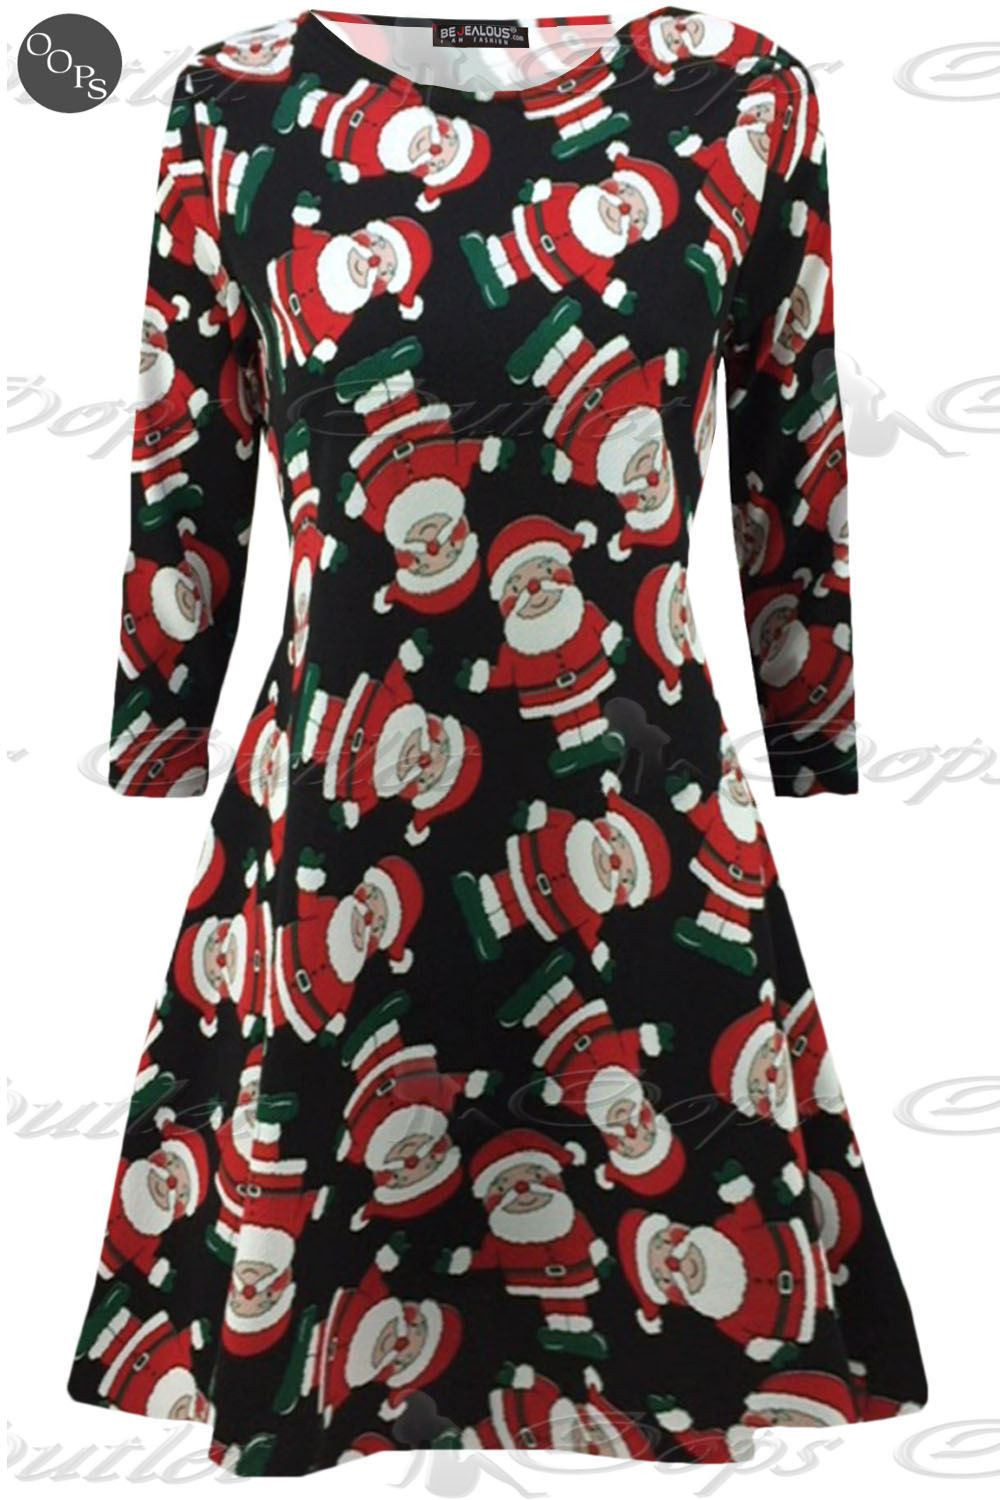 Christmas Swing Dress  Womens Christmas Swing Dress La s Xmas Santa Rudolph